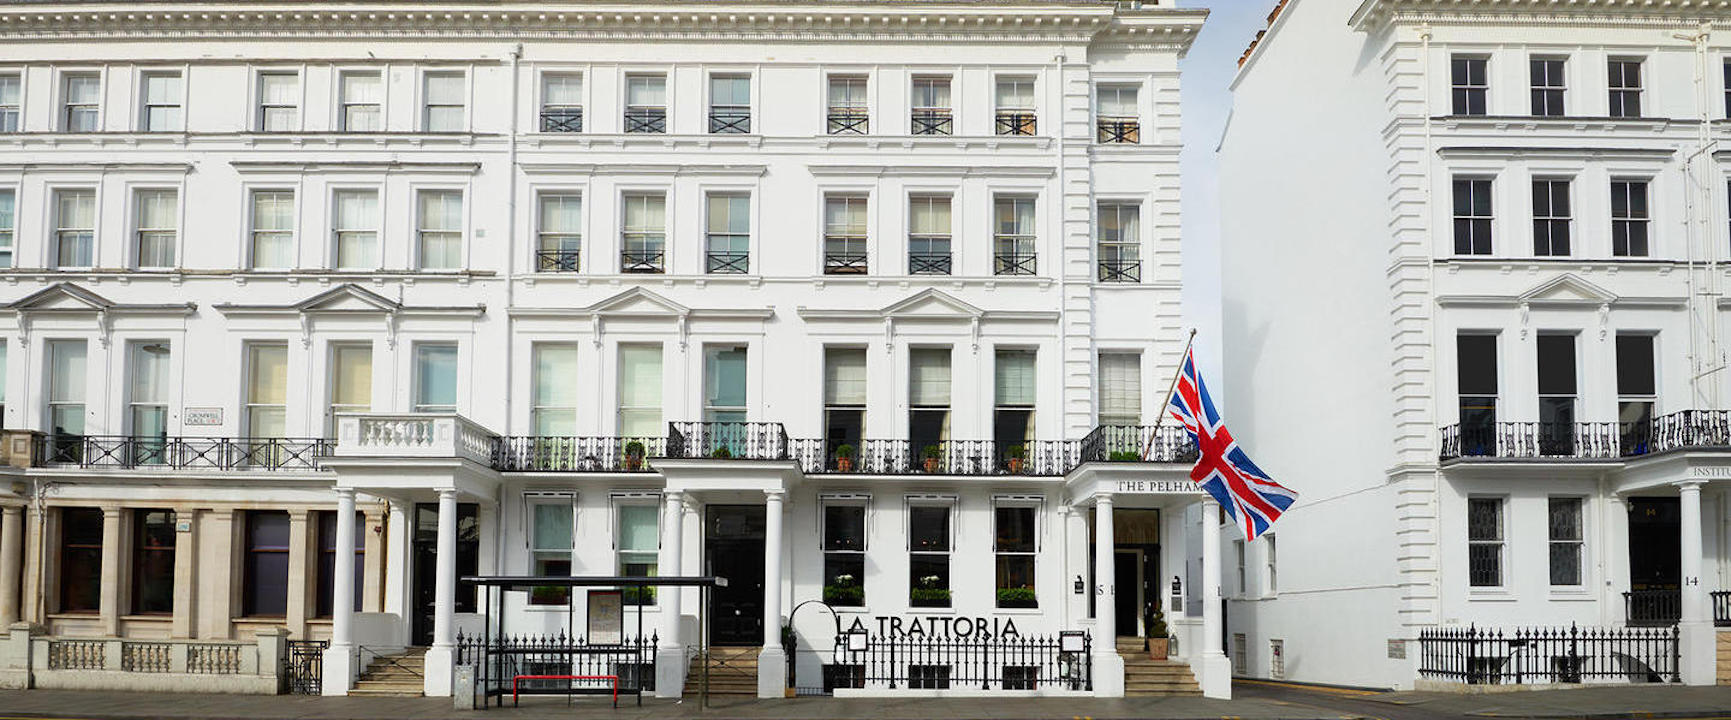 The Pelham Hotel ***** , Michelin Starred - London / England